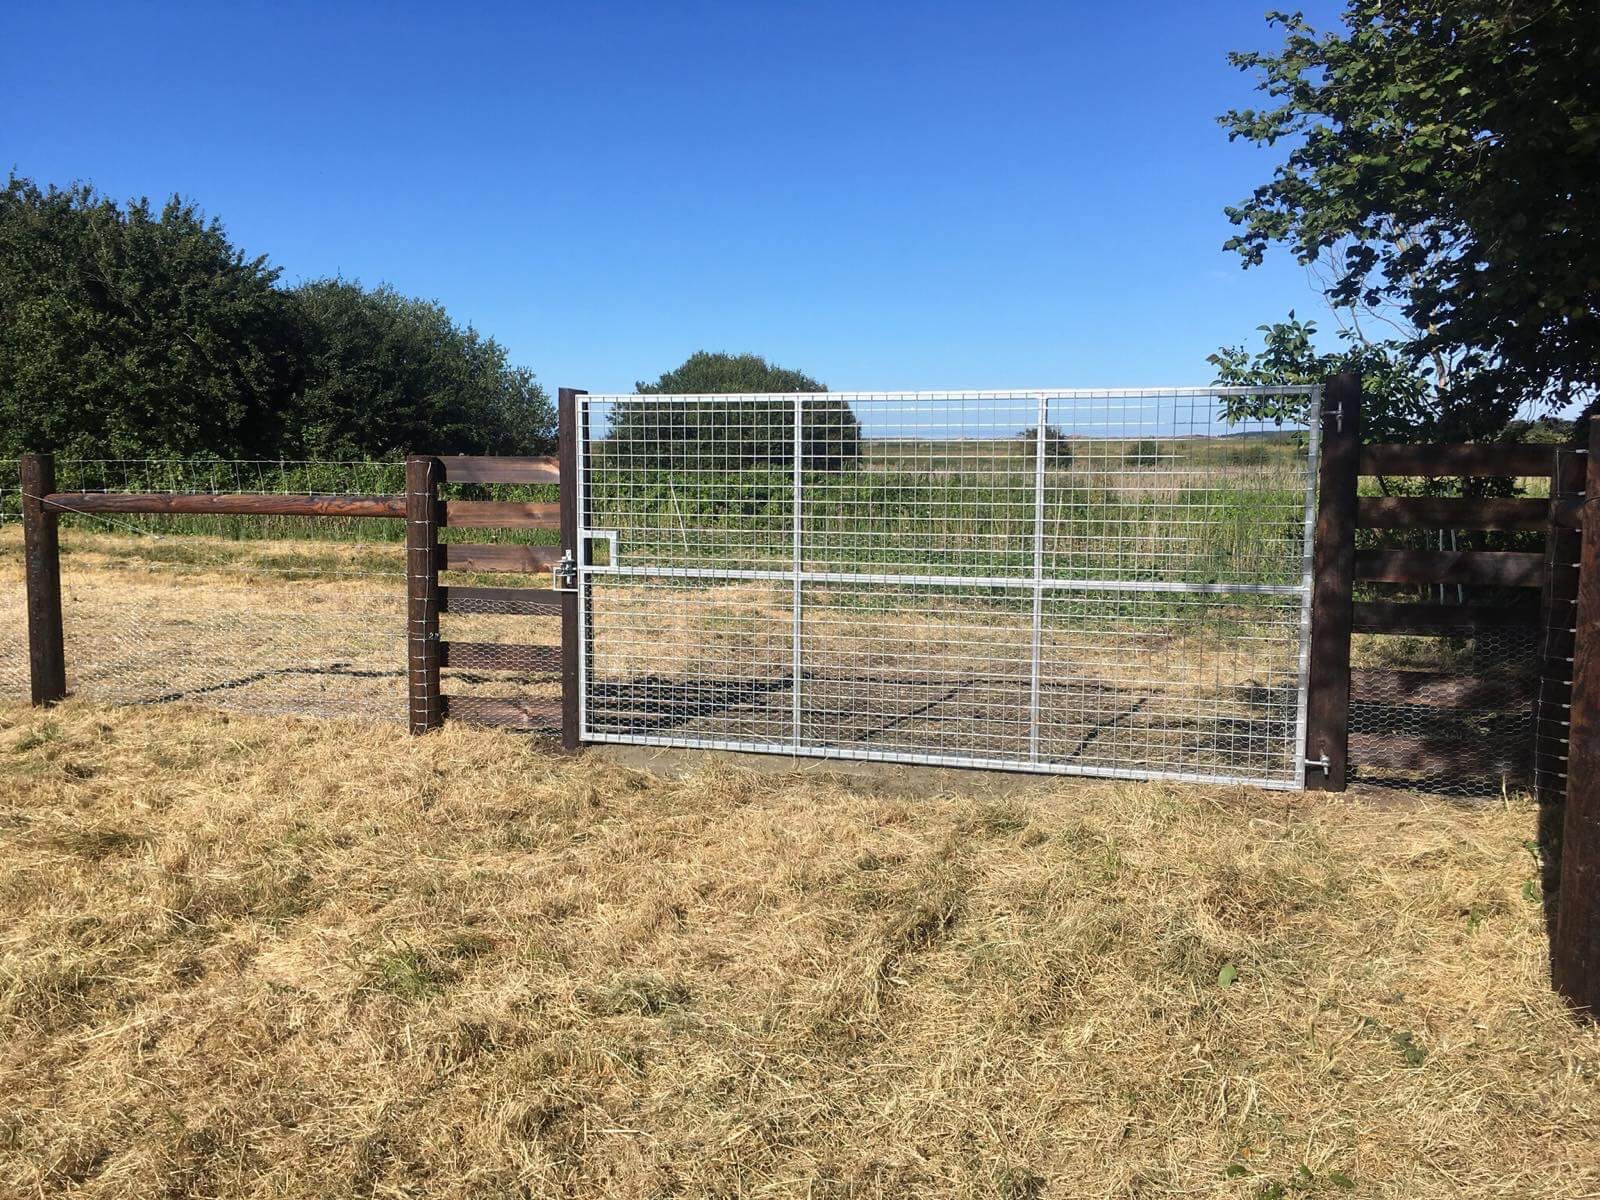 Hand-crafted metal gates